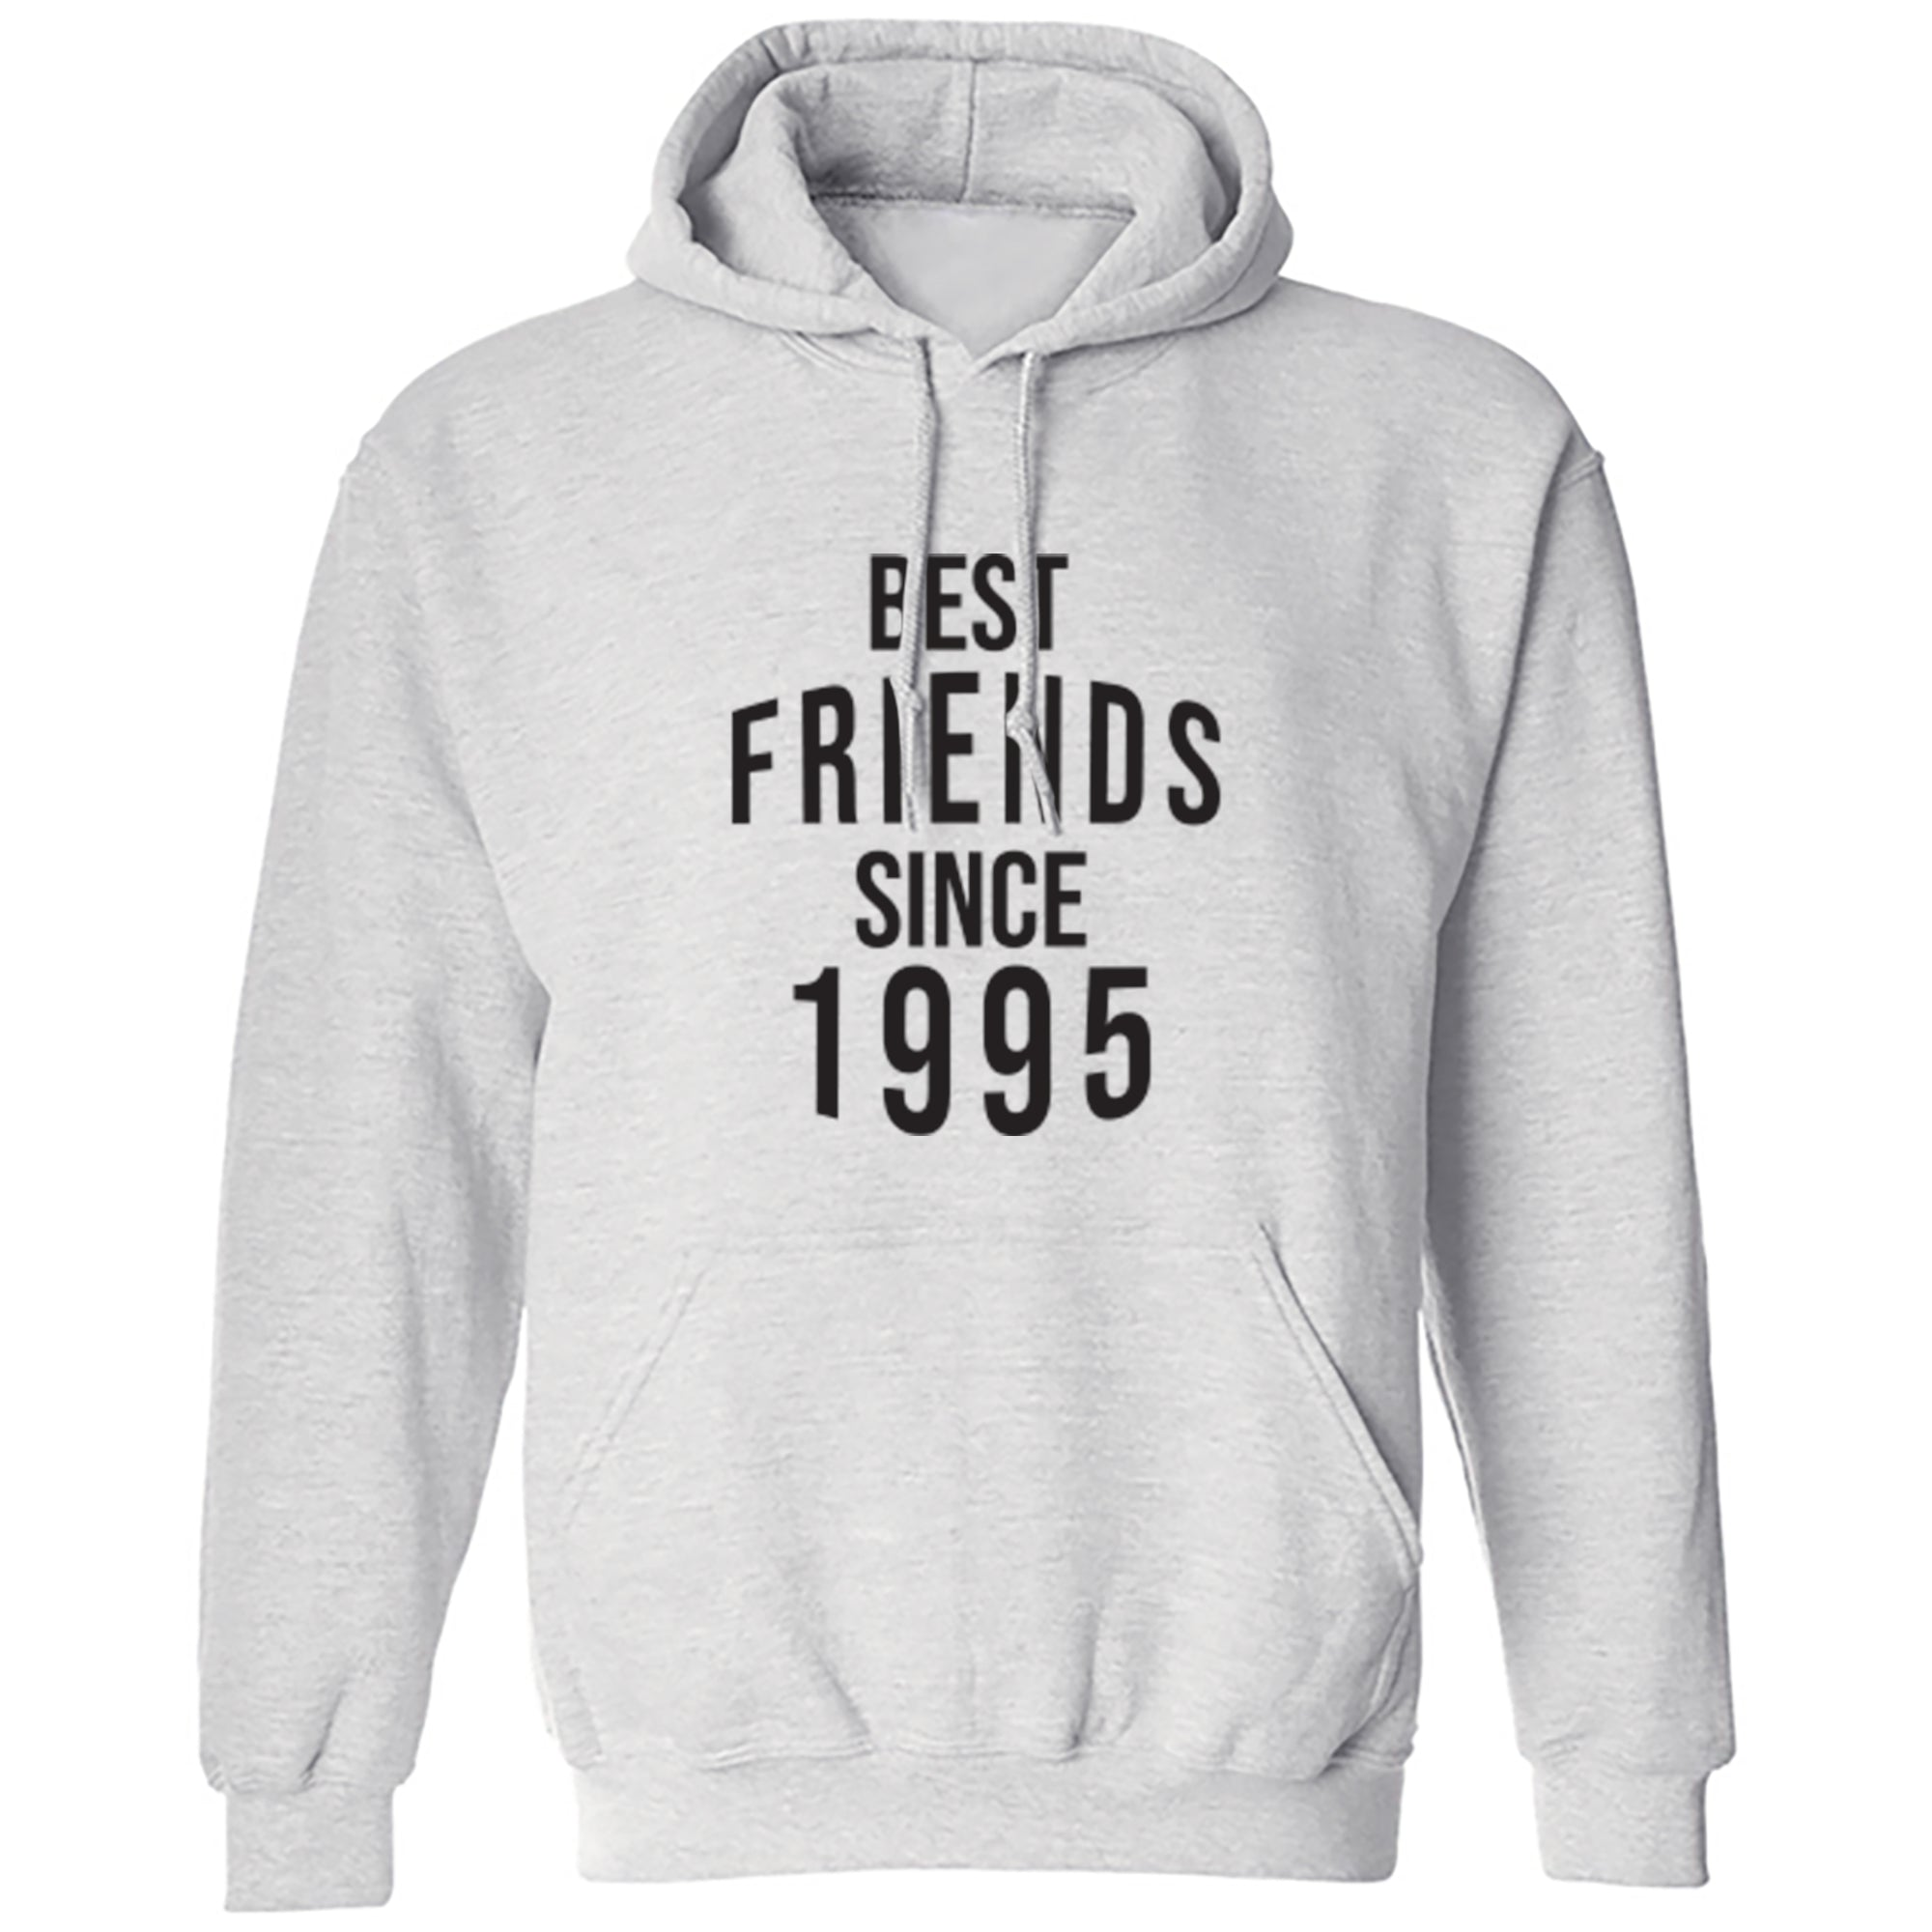 Best Friends Since 1995 Unisex Hoodie S0574 - Illustrated Identity Ltd.